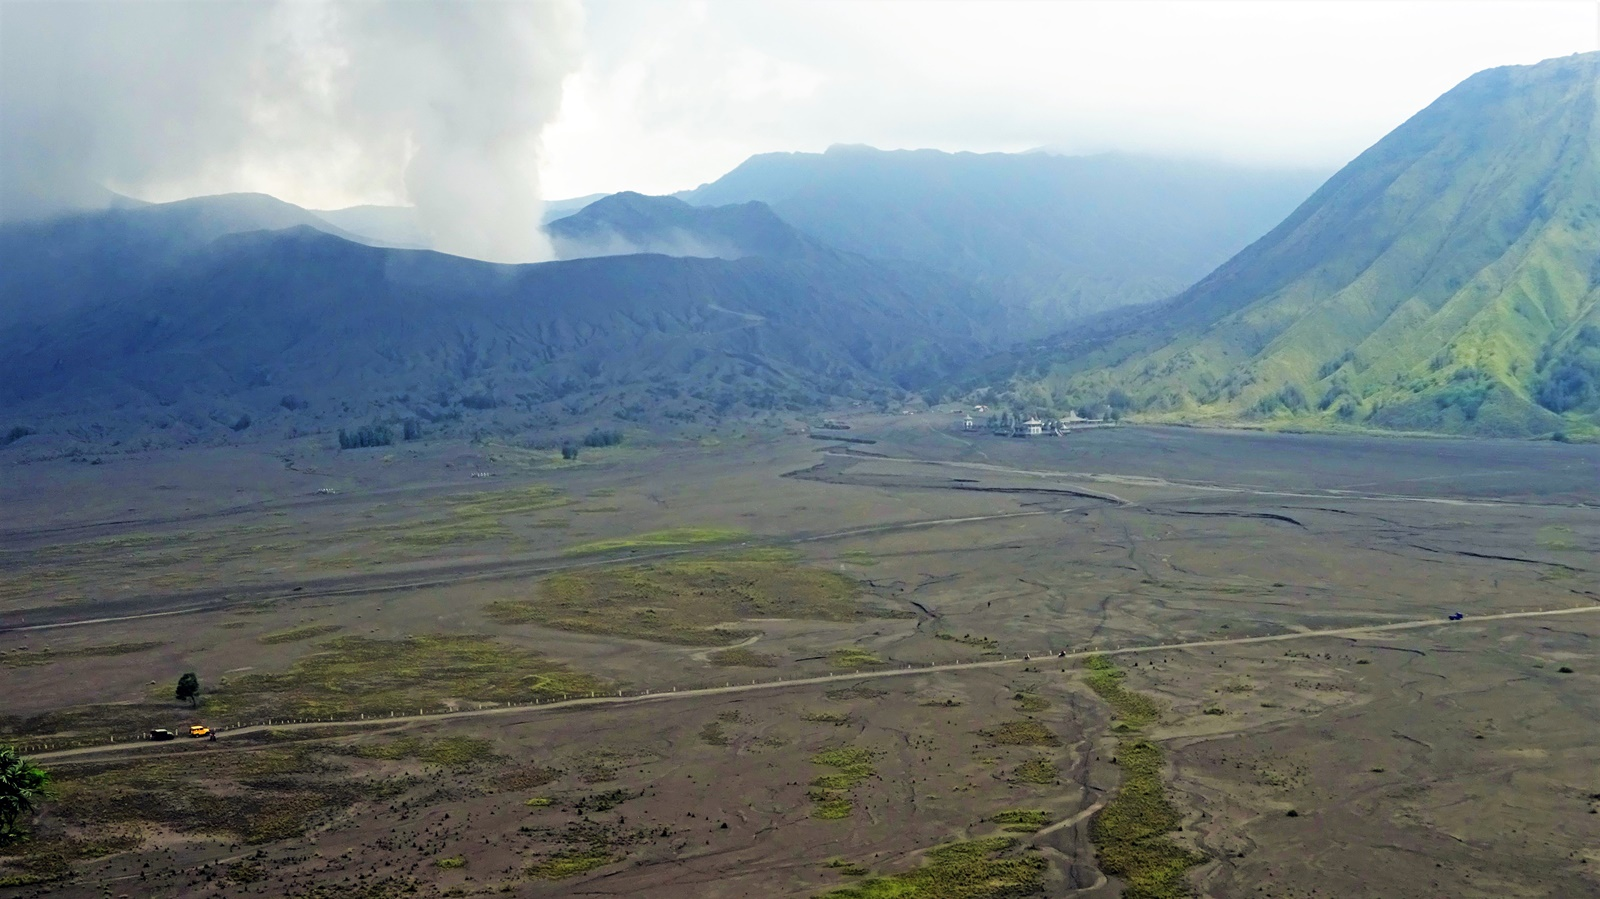 Mount Bromo and the Sea of Sand